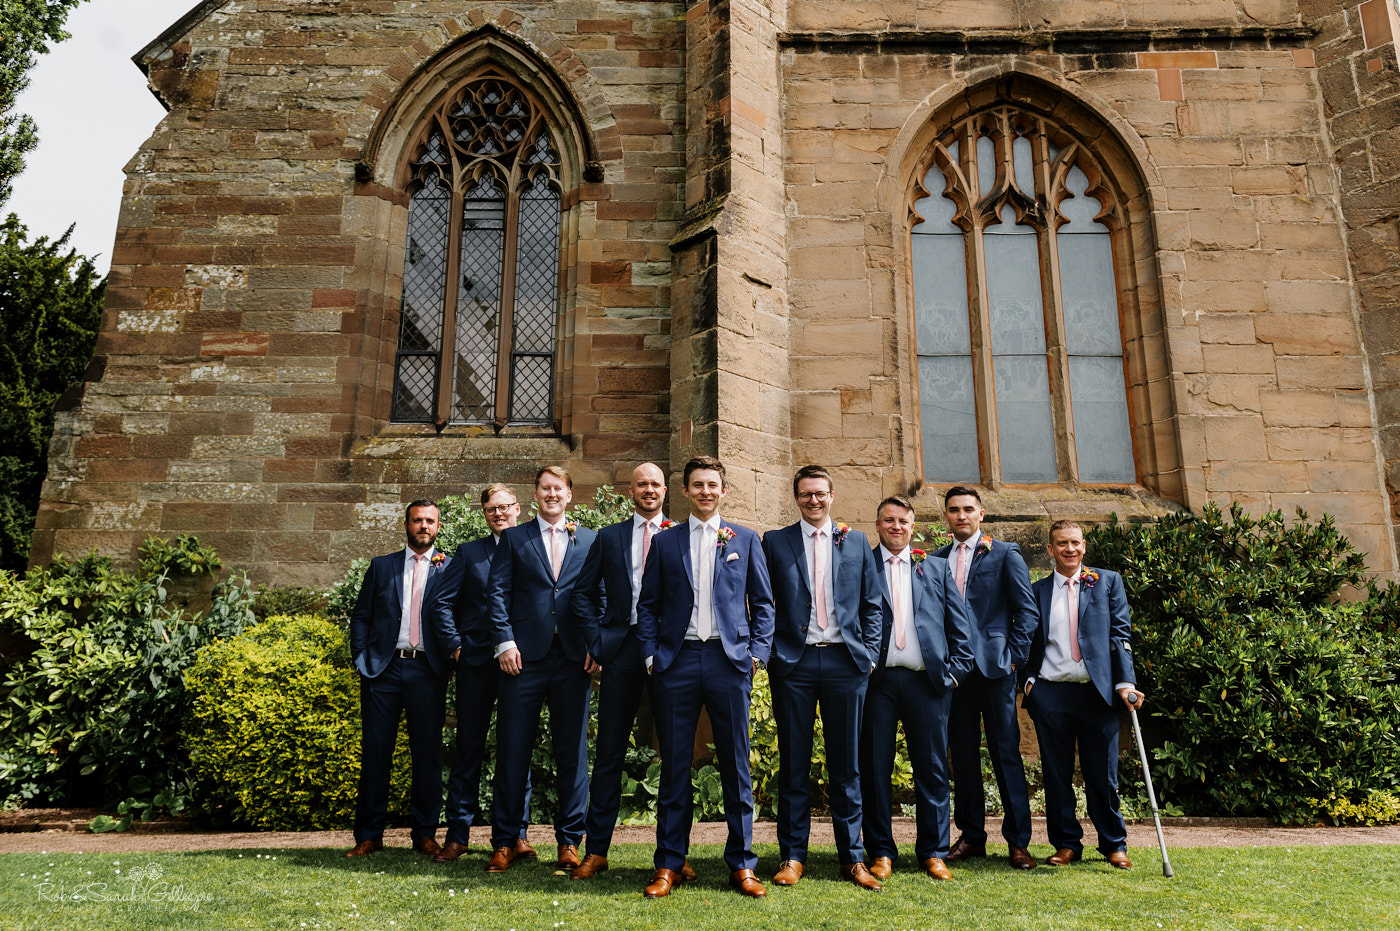 Groom and groomsmen group photo at St Leonards church in Clent, Worcestershire